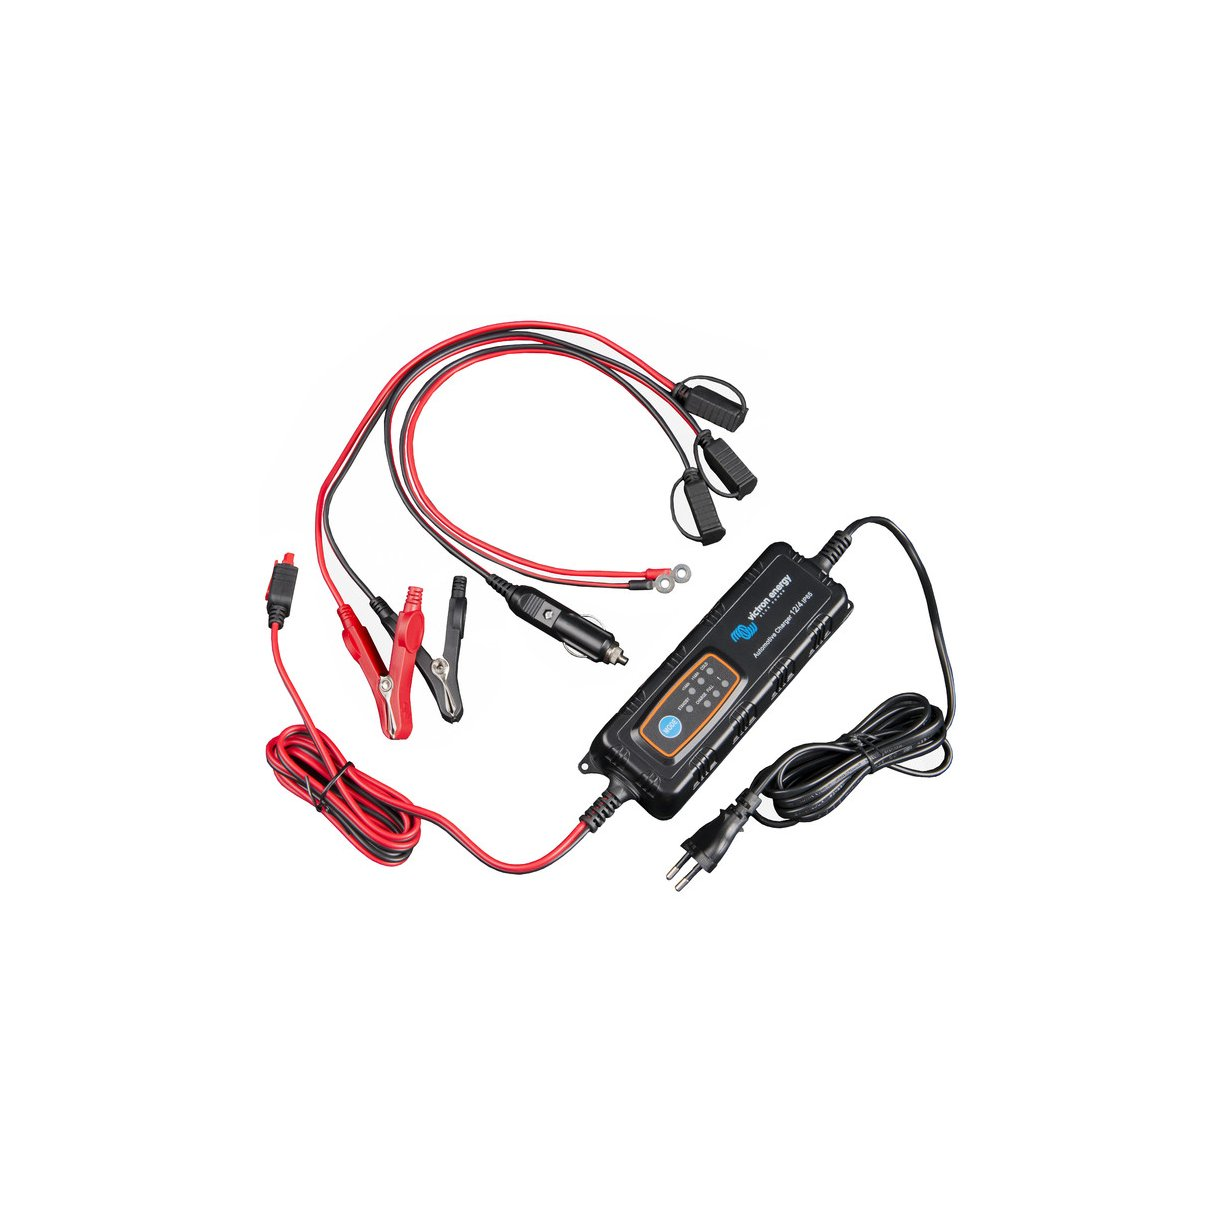 Victron Chargers For Starter Battery Automotive Ip65 6v